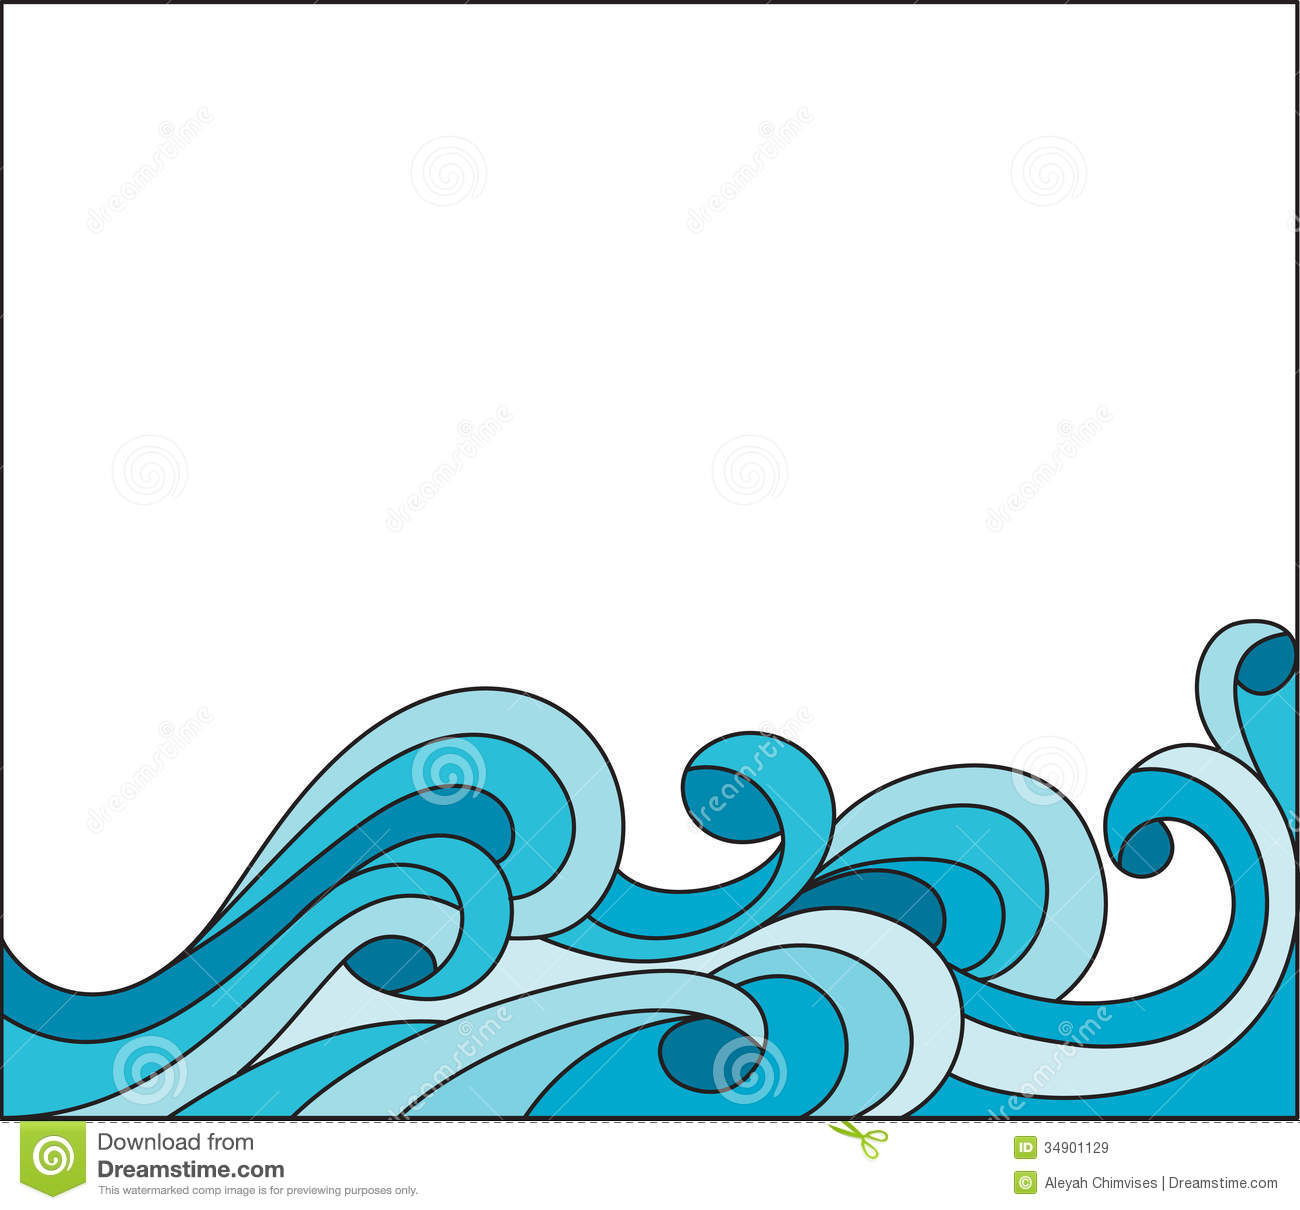 Clip Art Clip Art Waves wave border clipart kid ocean waves royalty free stock images